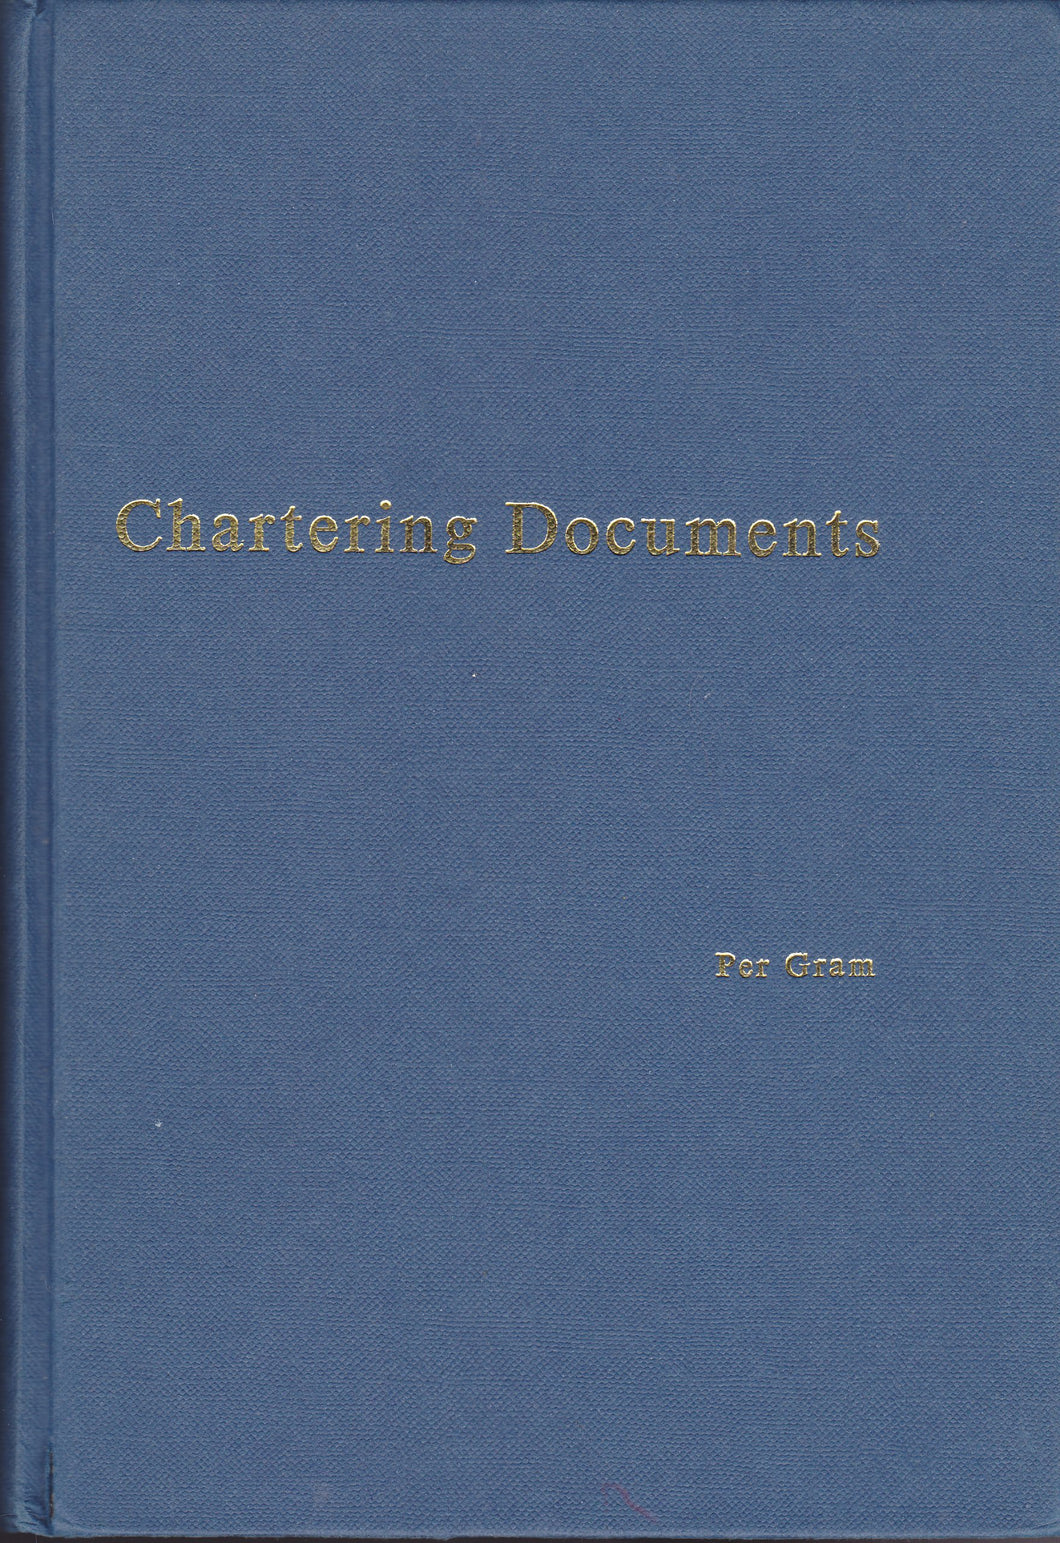 Gram on Chartering Documents